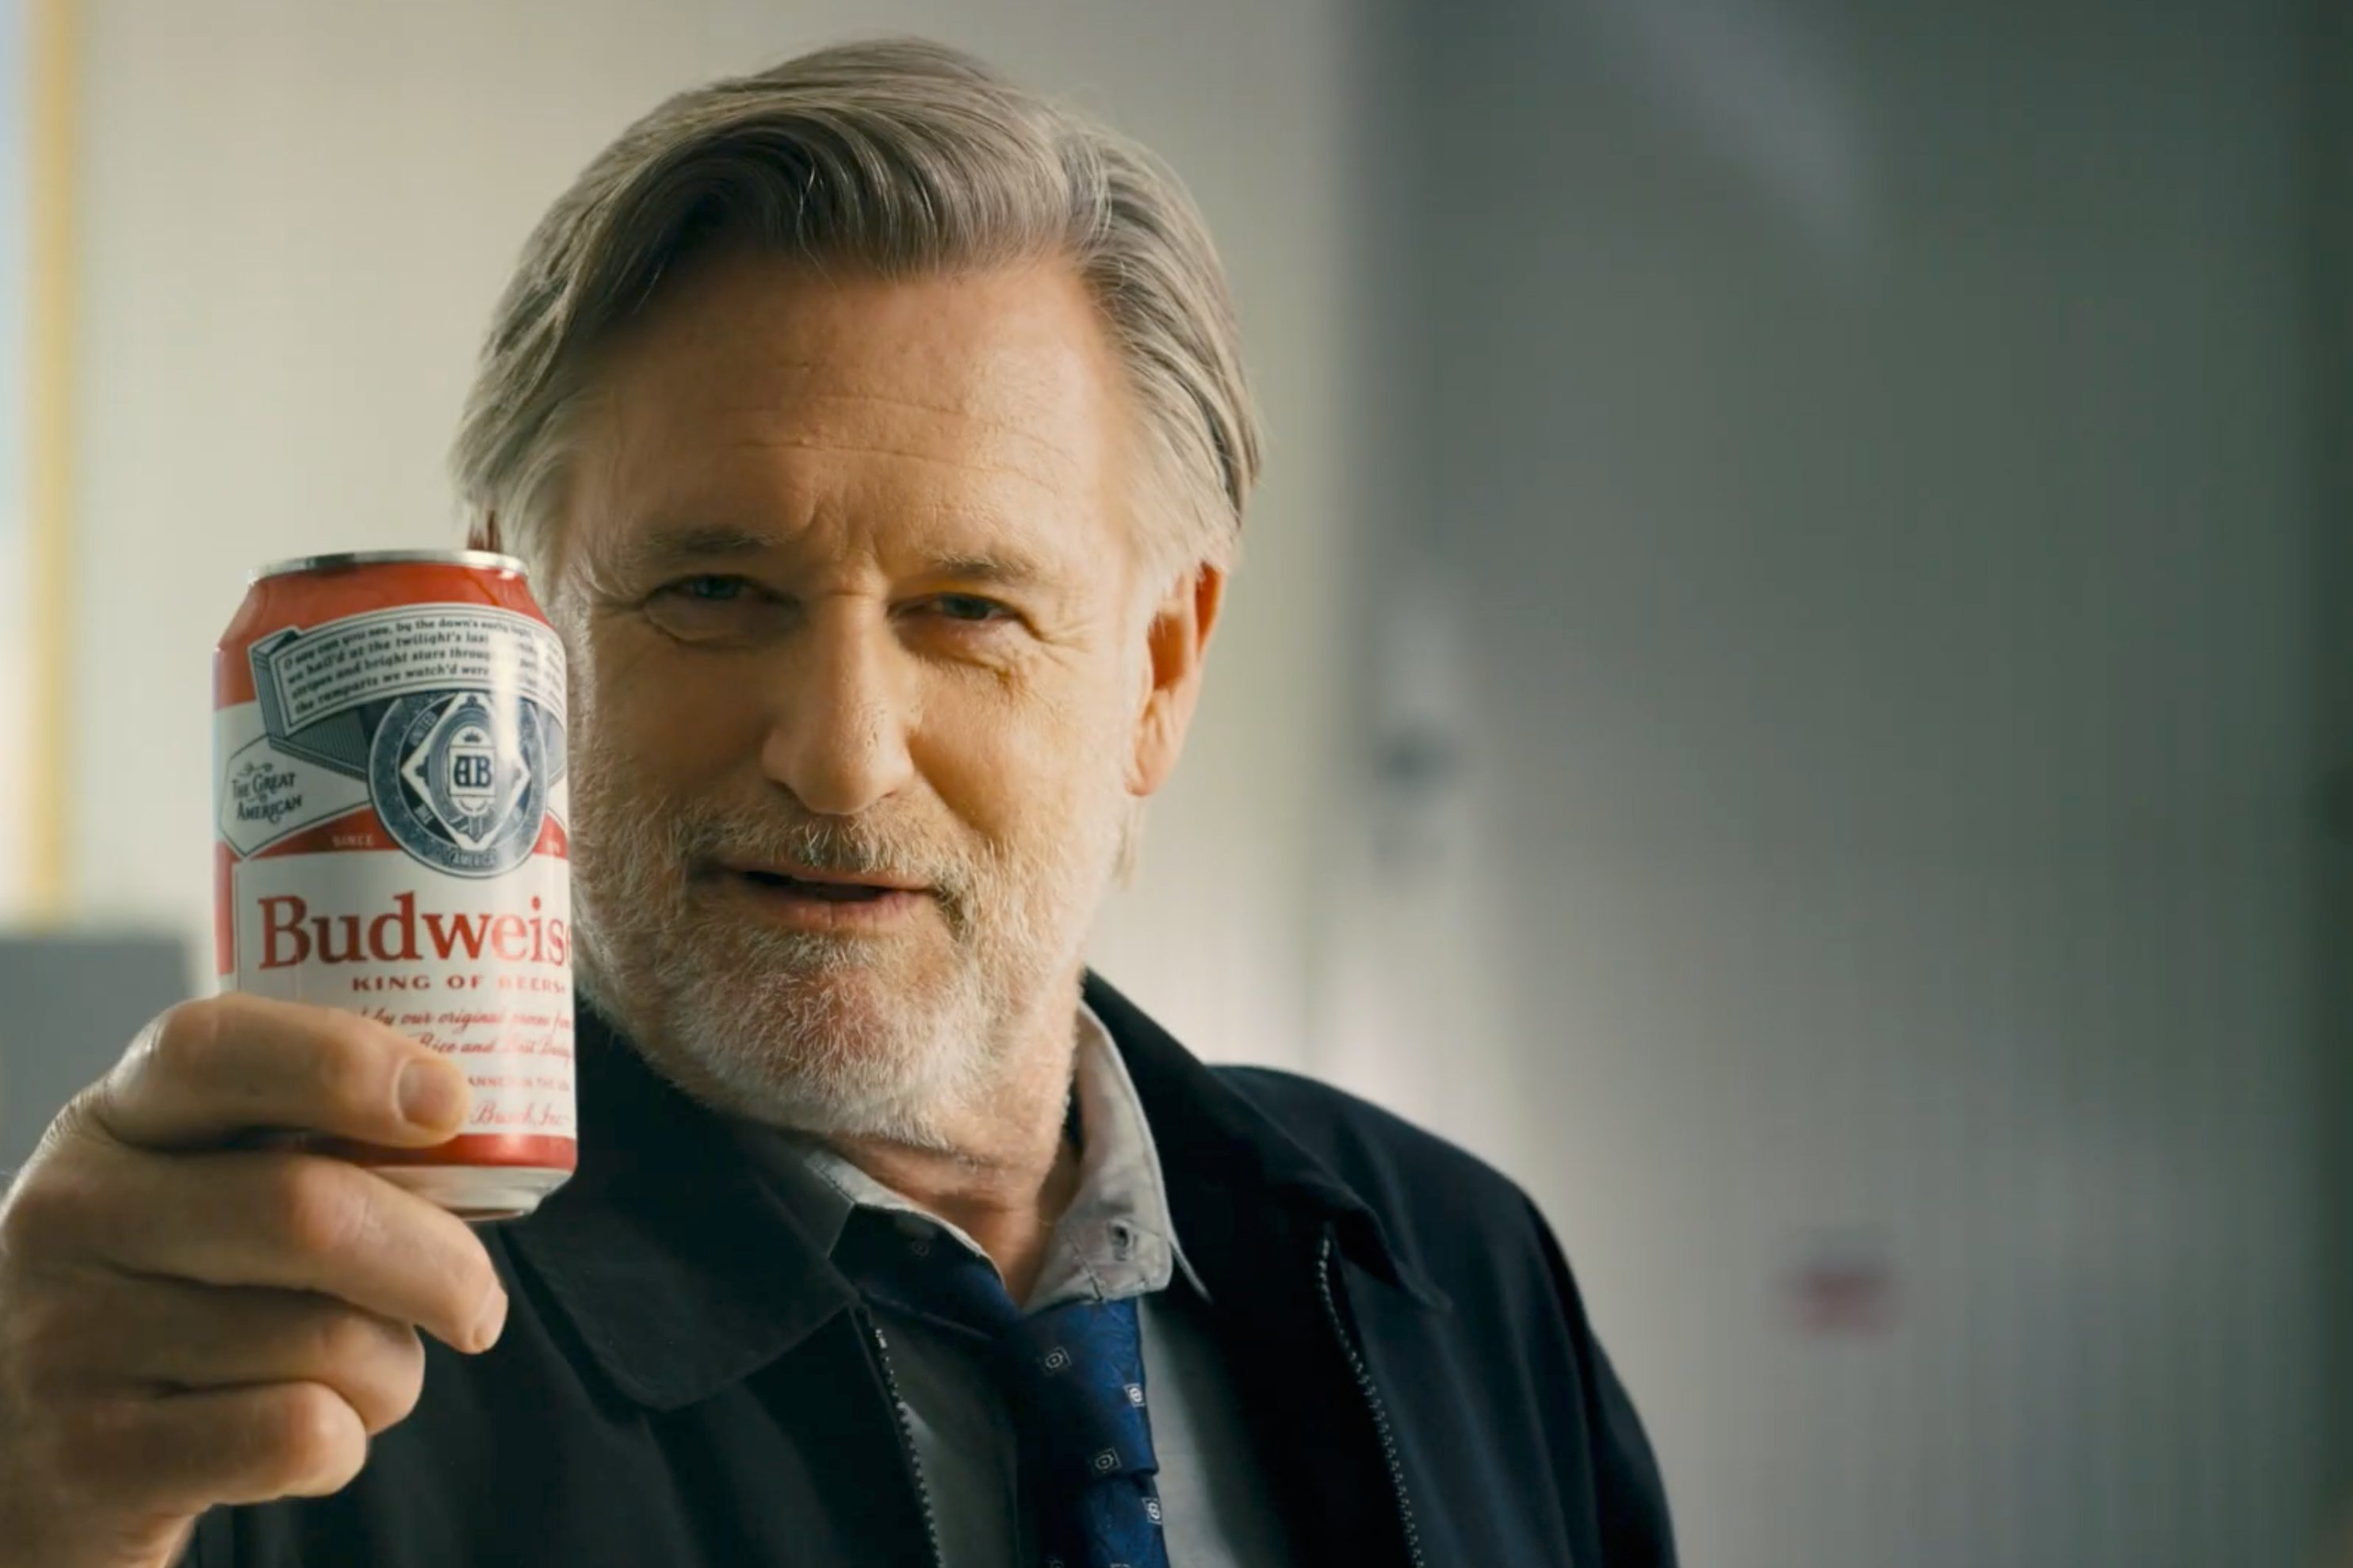 Budweiser: Independence Day